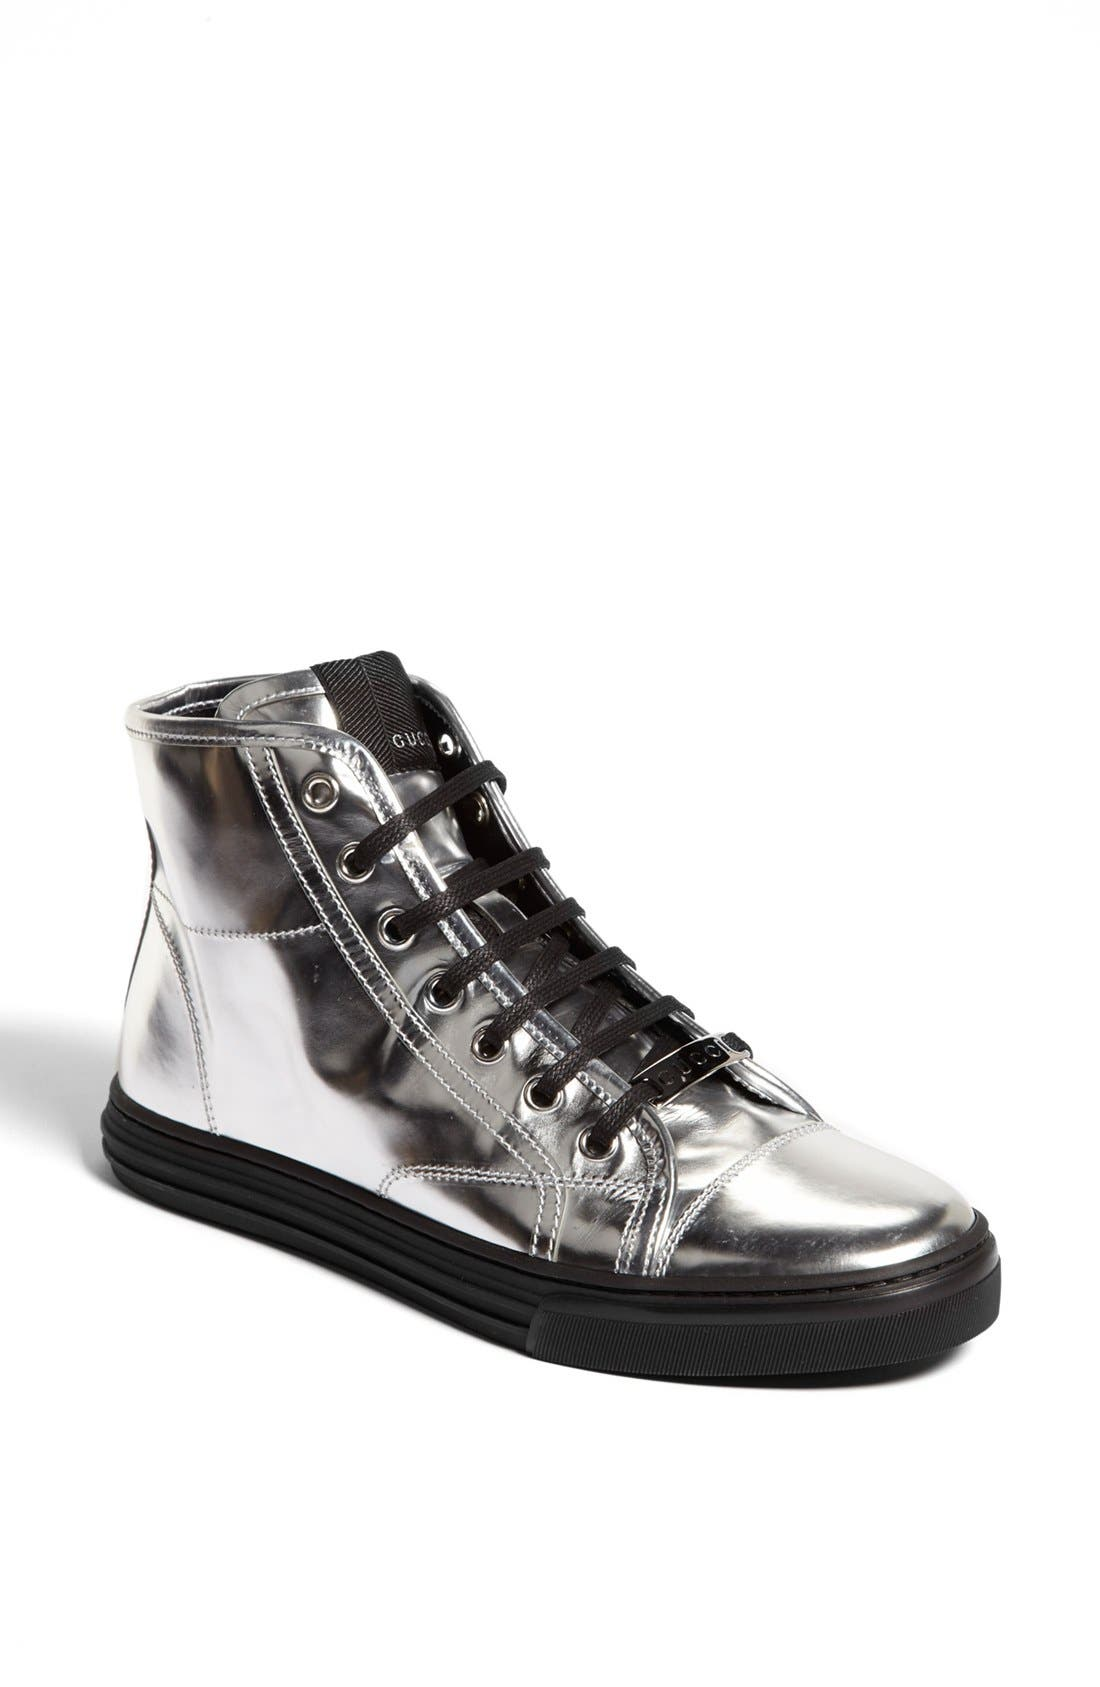 Alternate Image 1 Selected - Gucci 'California' Metallic High Top Sneaker